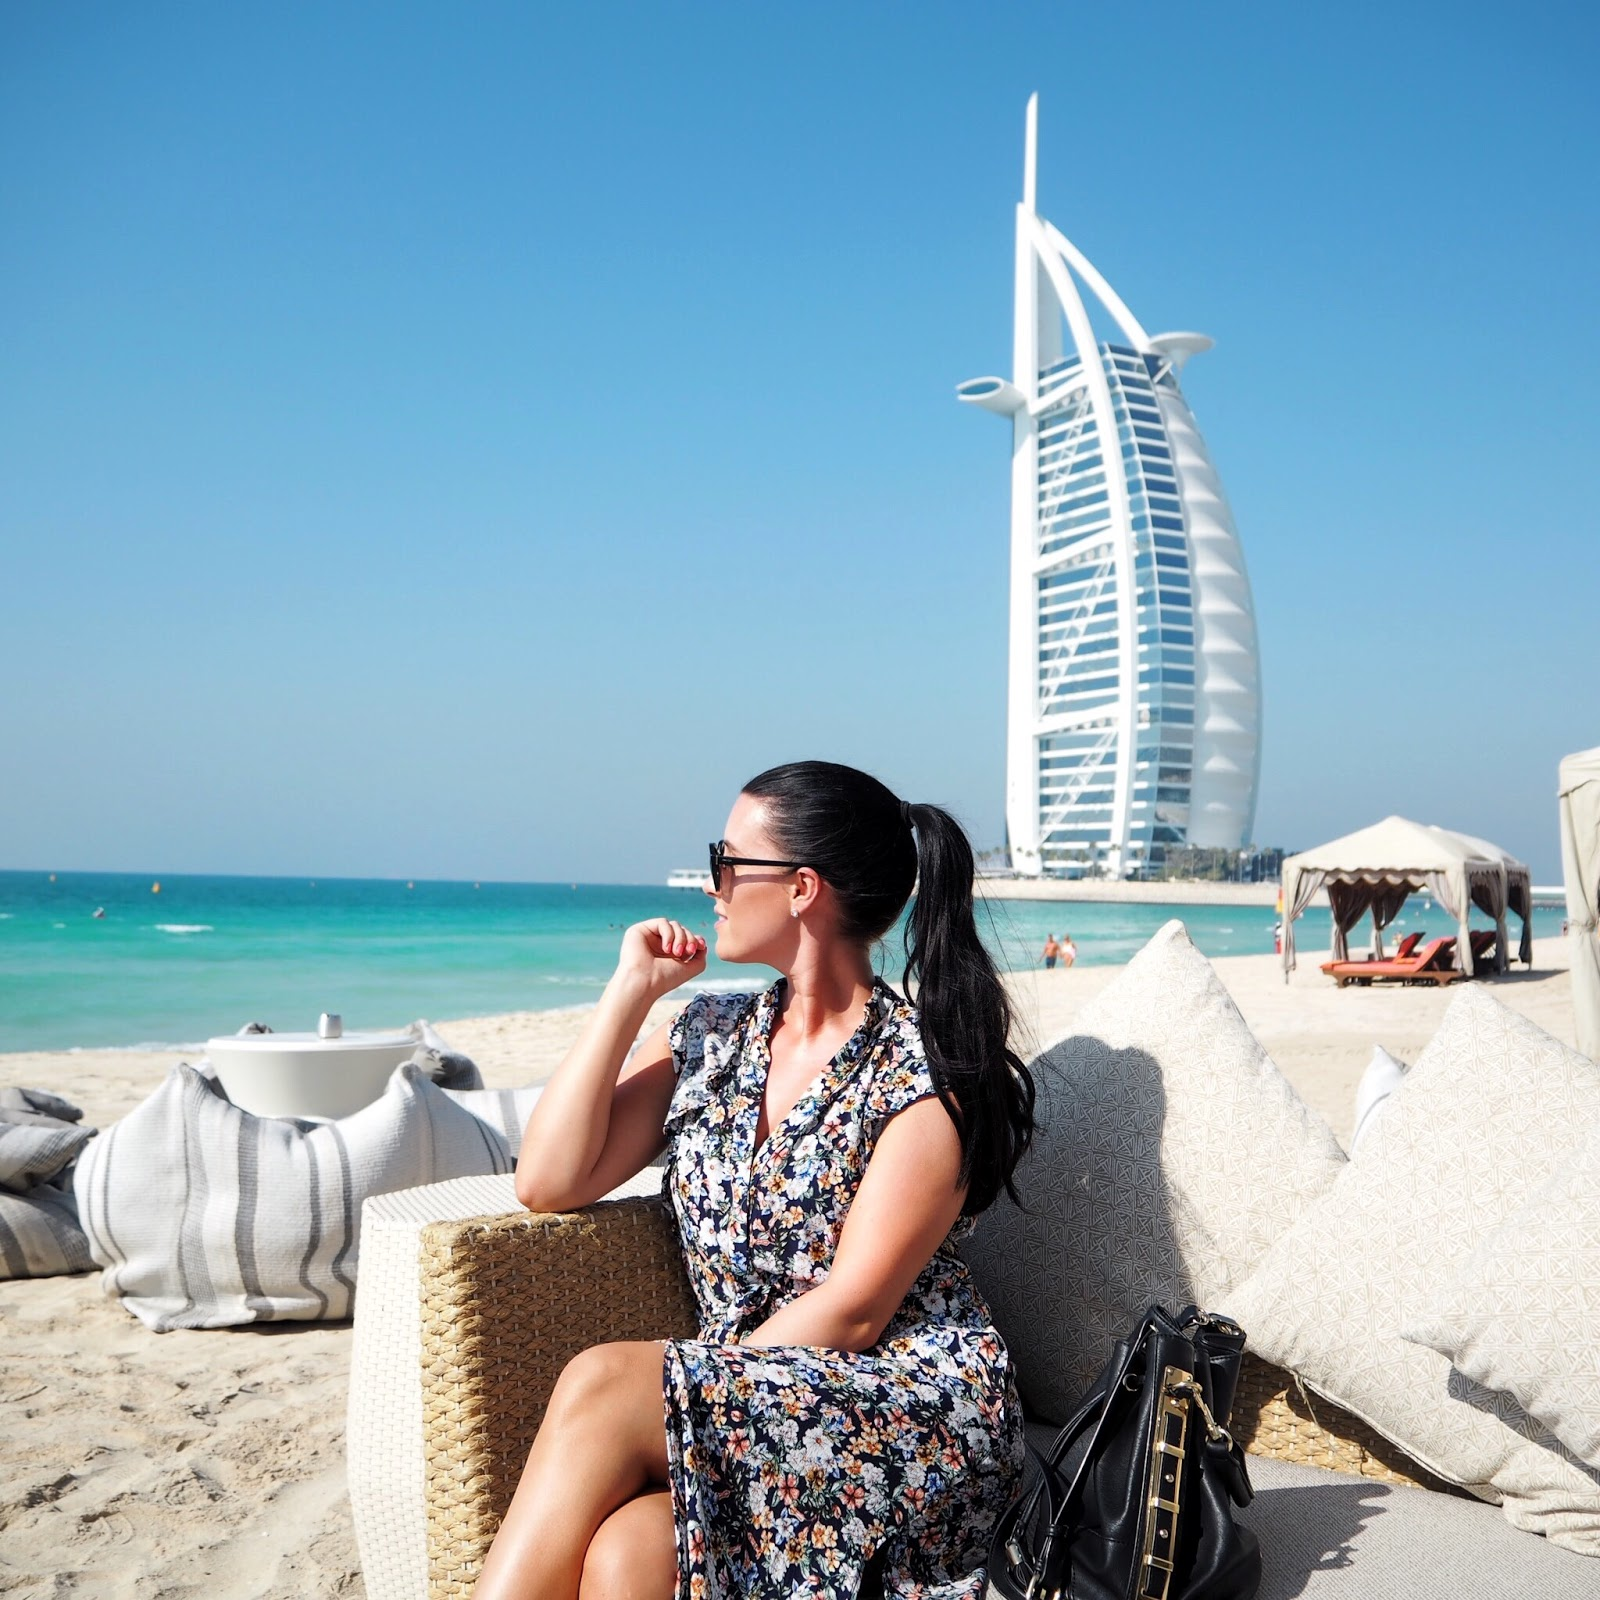 The Most Instagrammable Places In Dubai